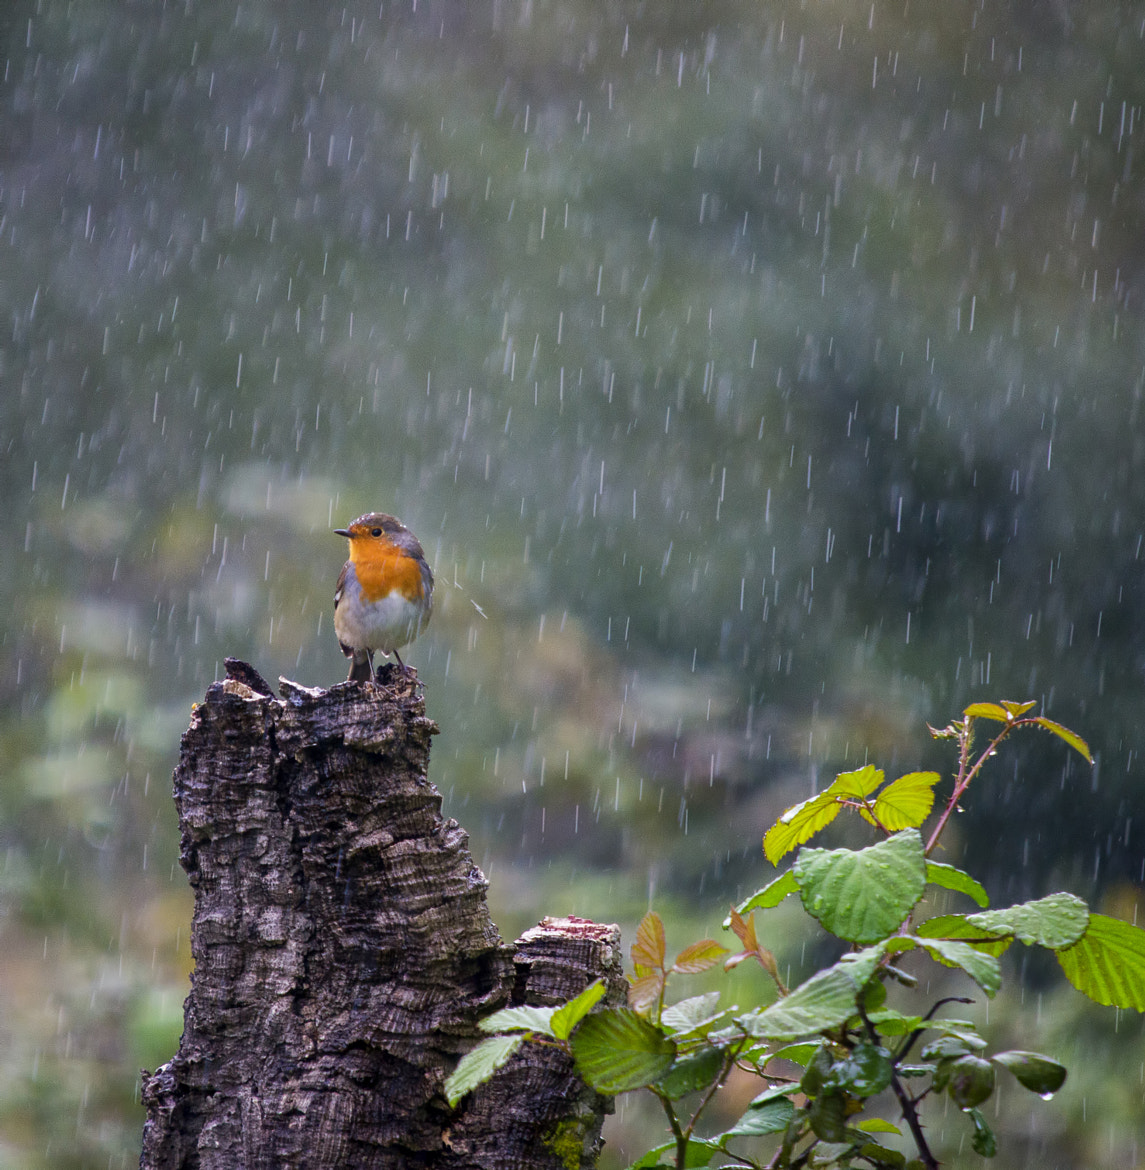 Photograph Taking shower ! by Emanuel Fernandes on 500px